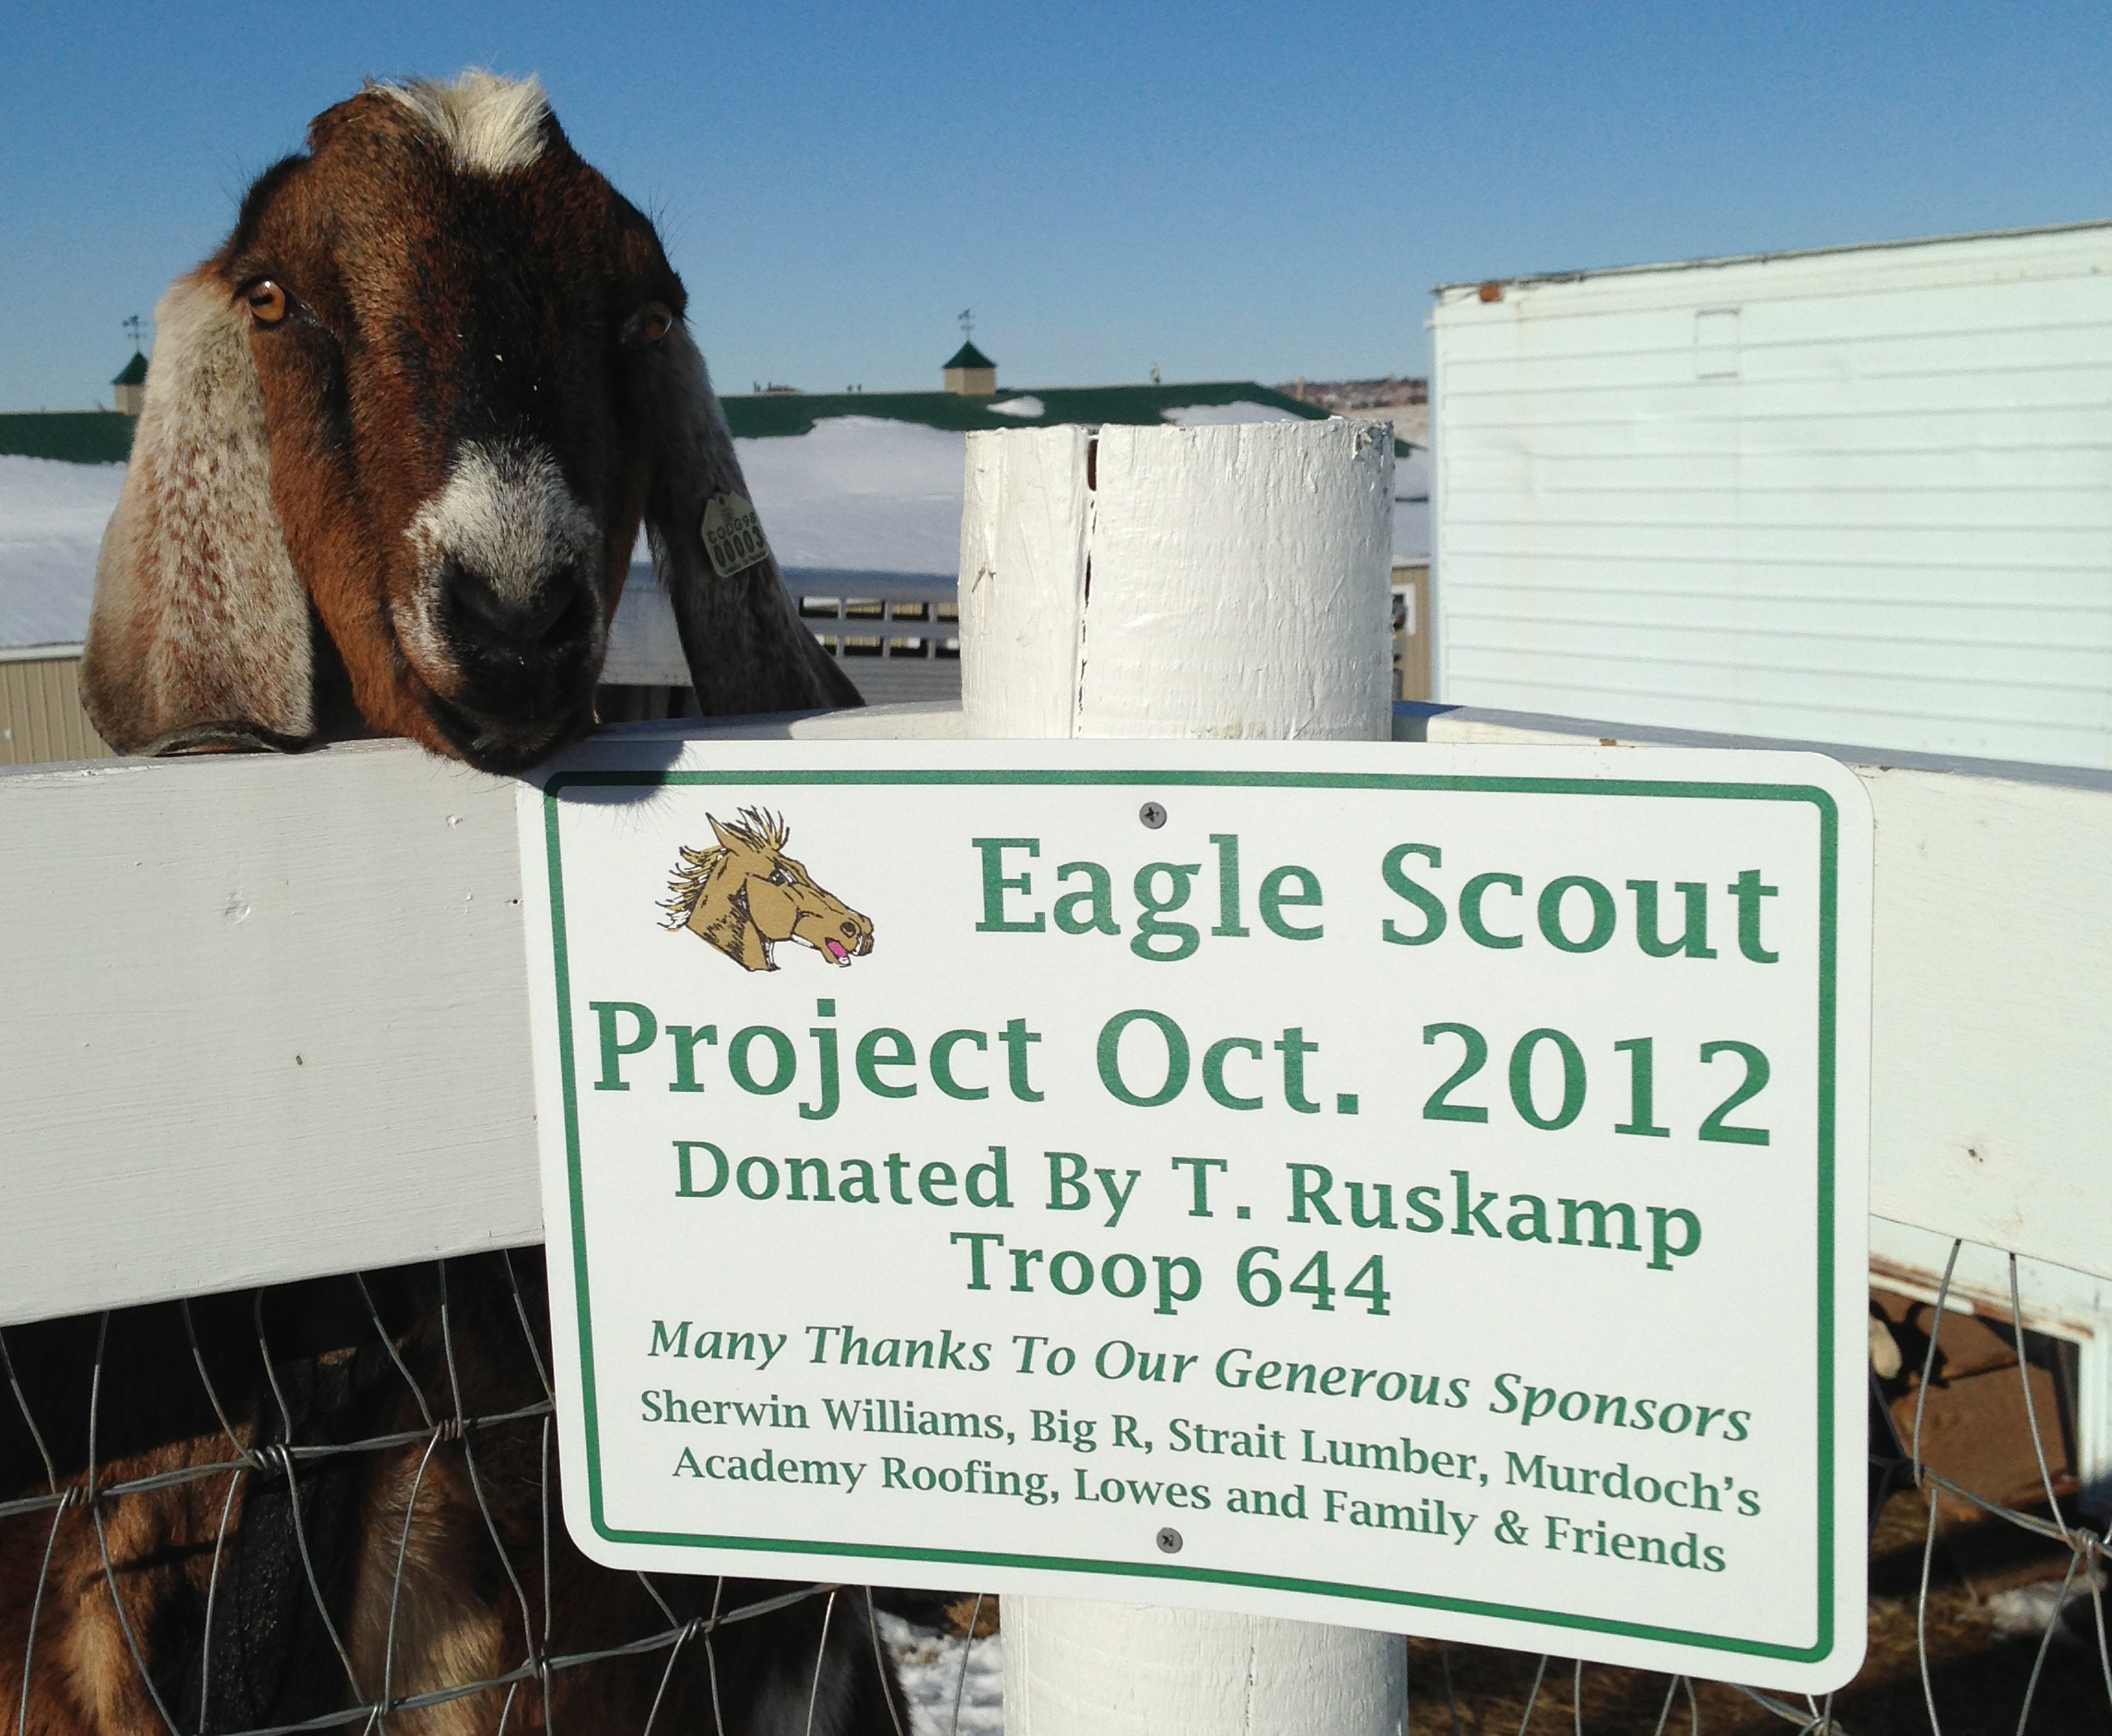 Eagle Scout Project